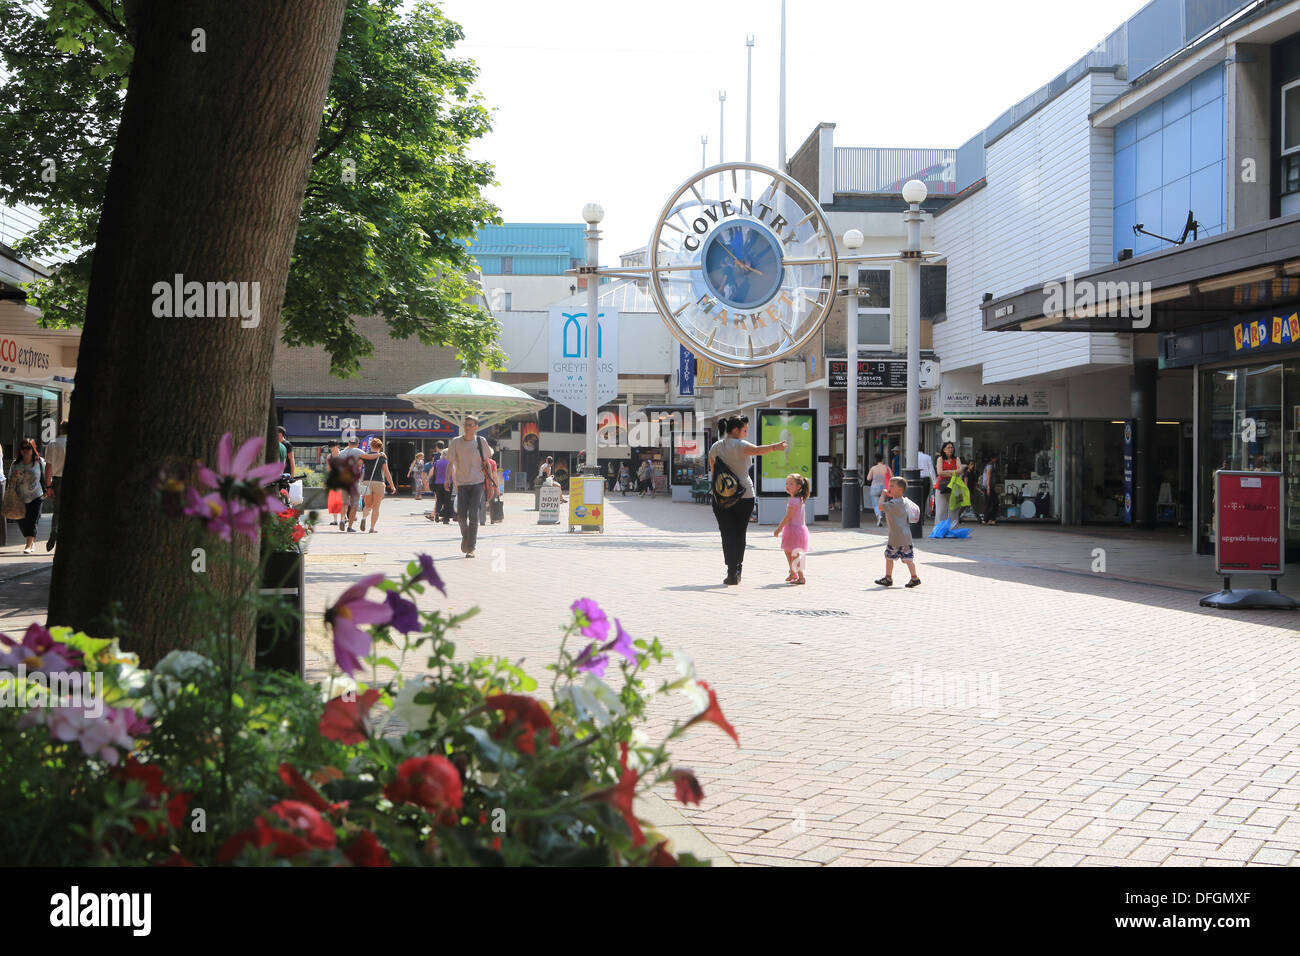 Market Way pedestrianized shopping centre in the City of Coventry, in Warwickshire, West Midlands, England, UK - Stock Image